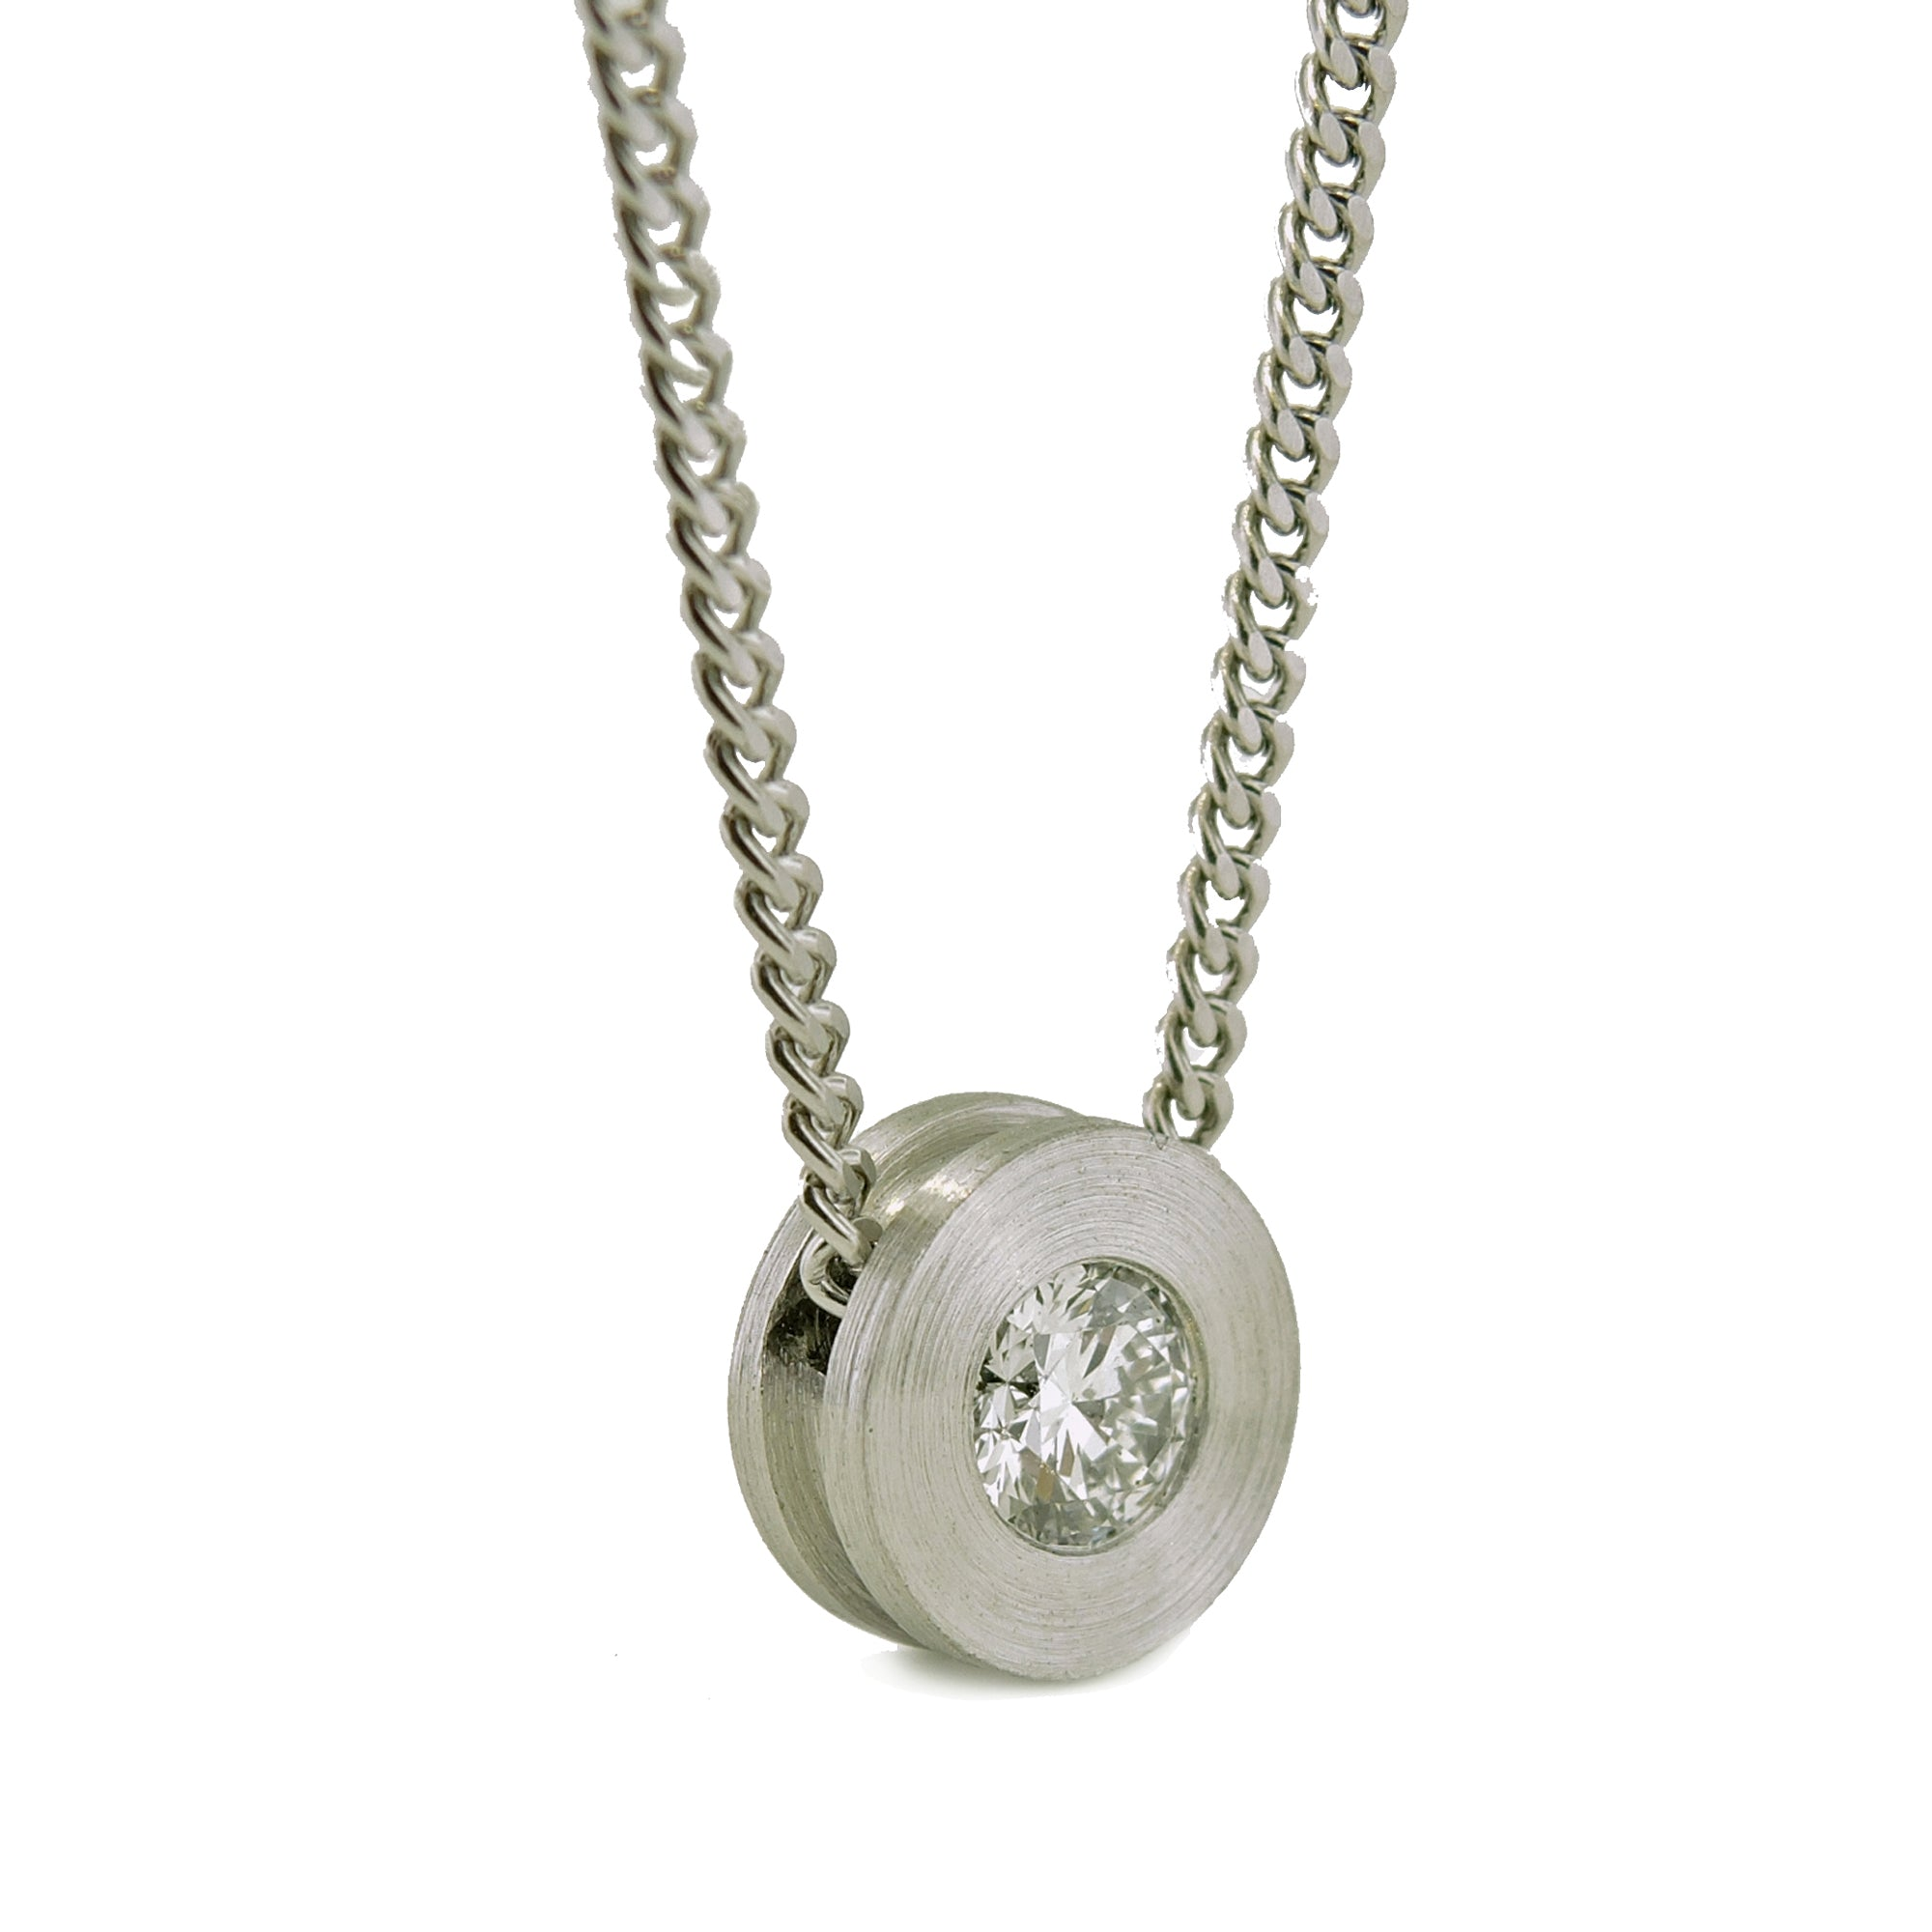 Diamond pendant: platinum with a burnish set .40ct. diamond, 9.5mm x 3.75mm deep, with slide through filed curb chain.